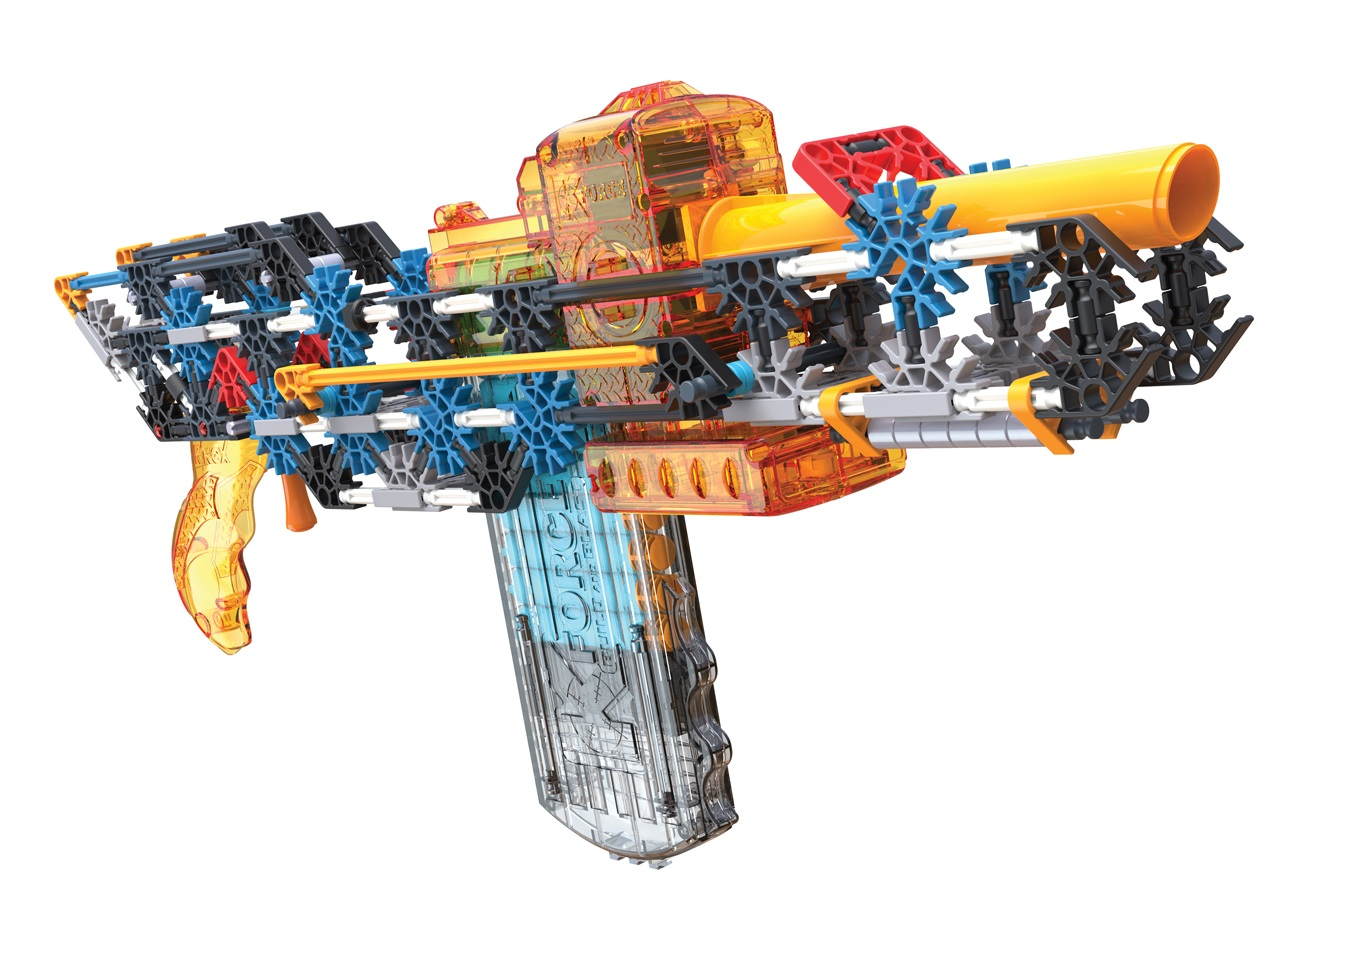 REVIEW: K'NEX K-Force Flash Fire Blaster   The Test Pit